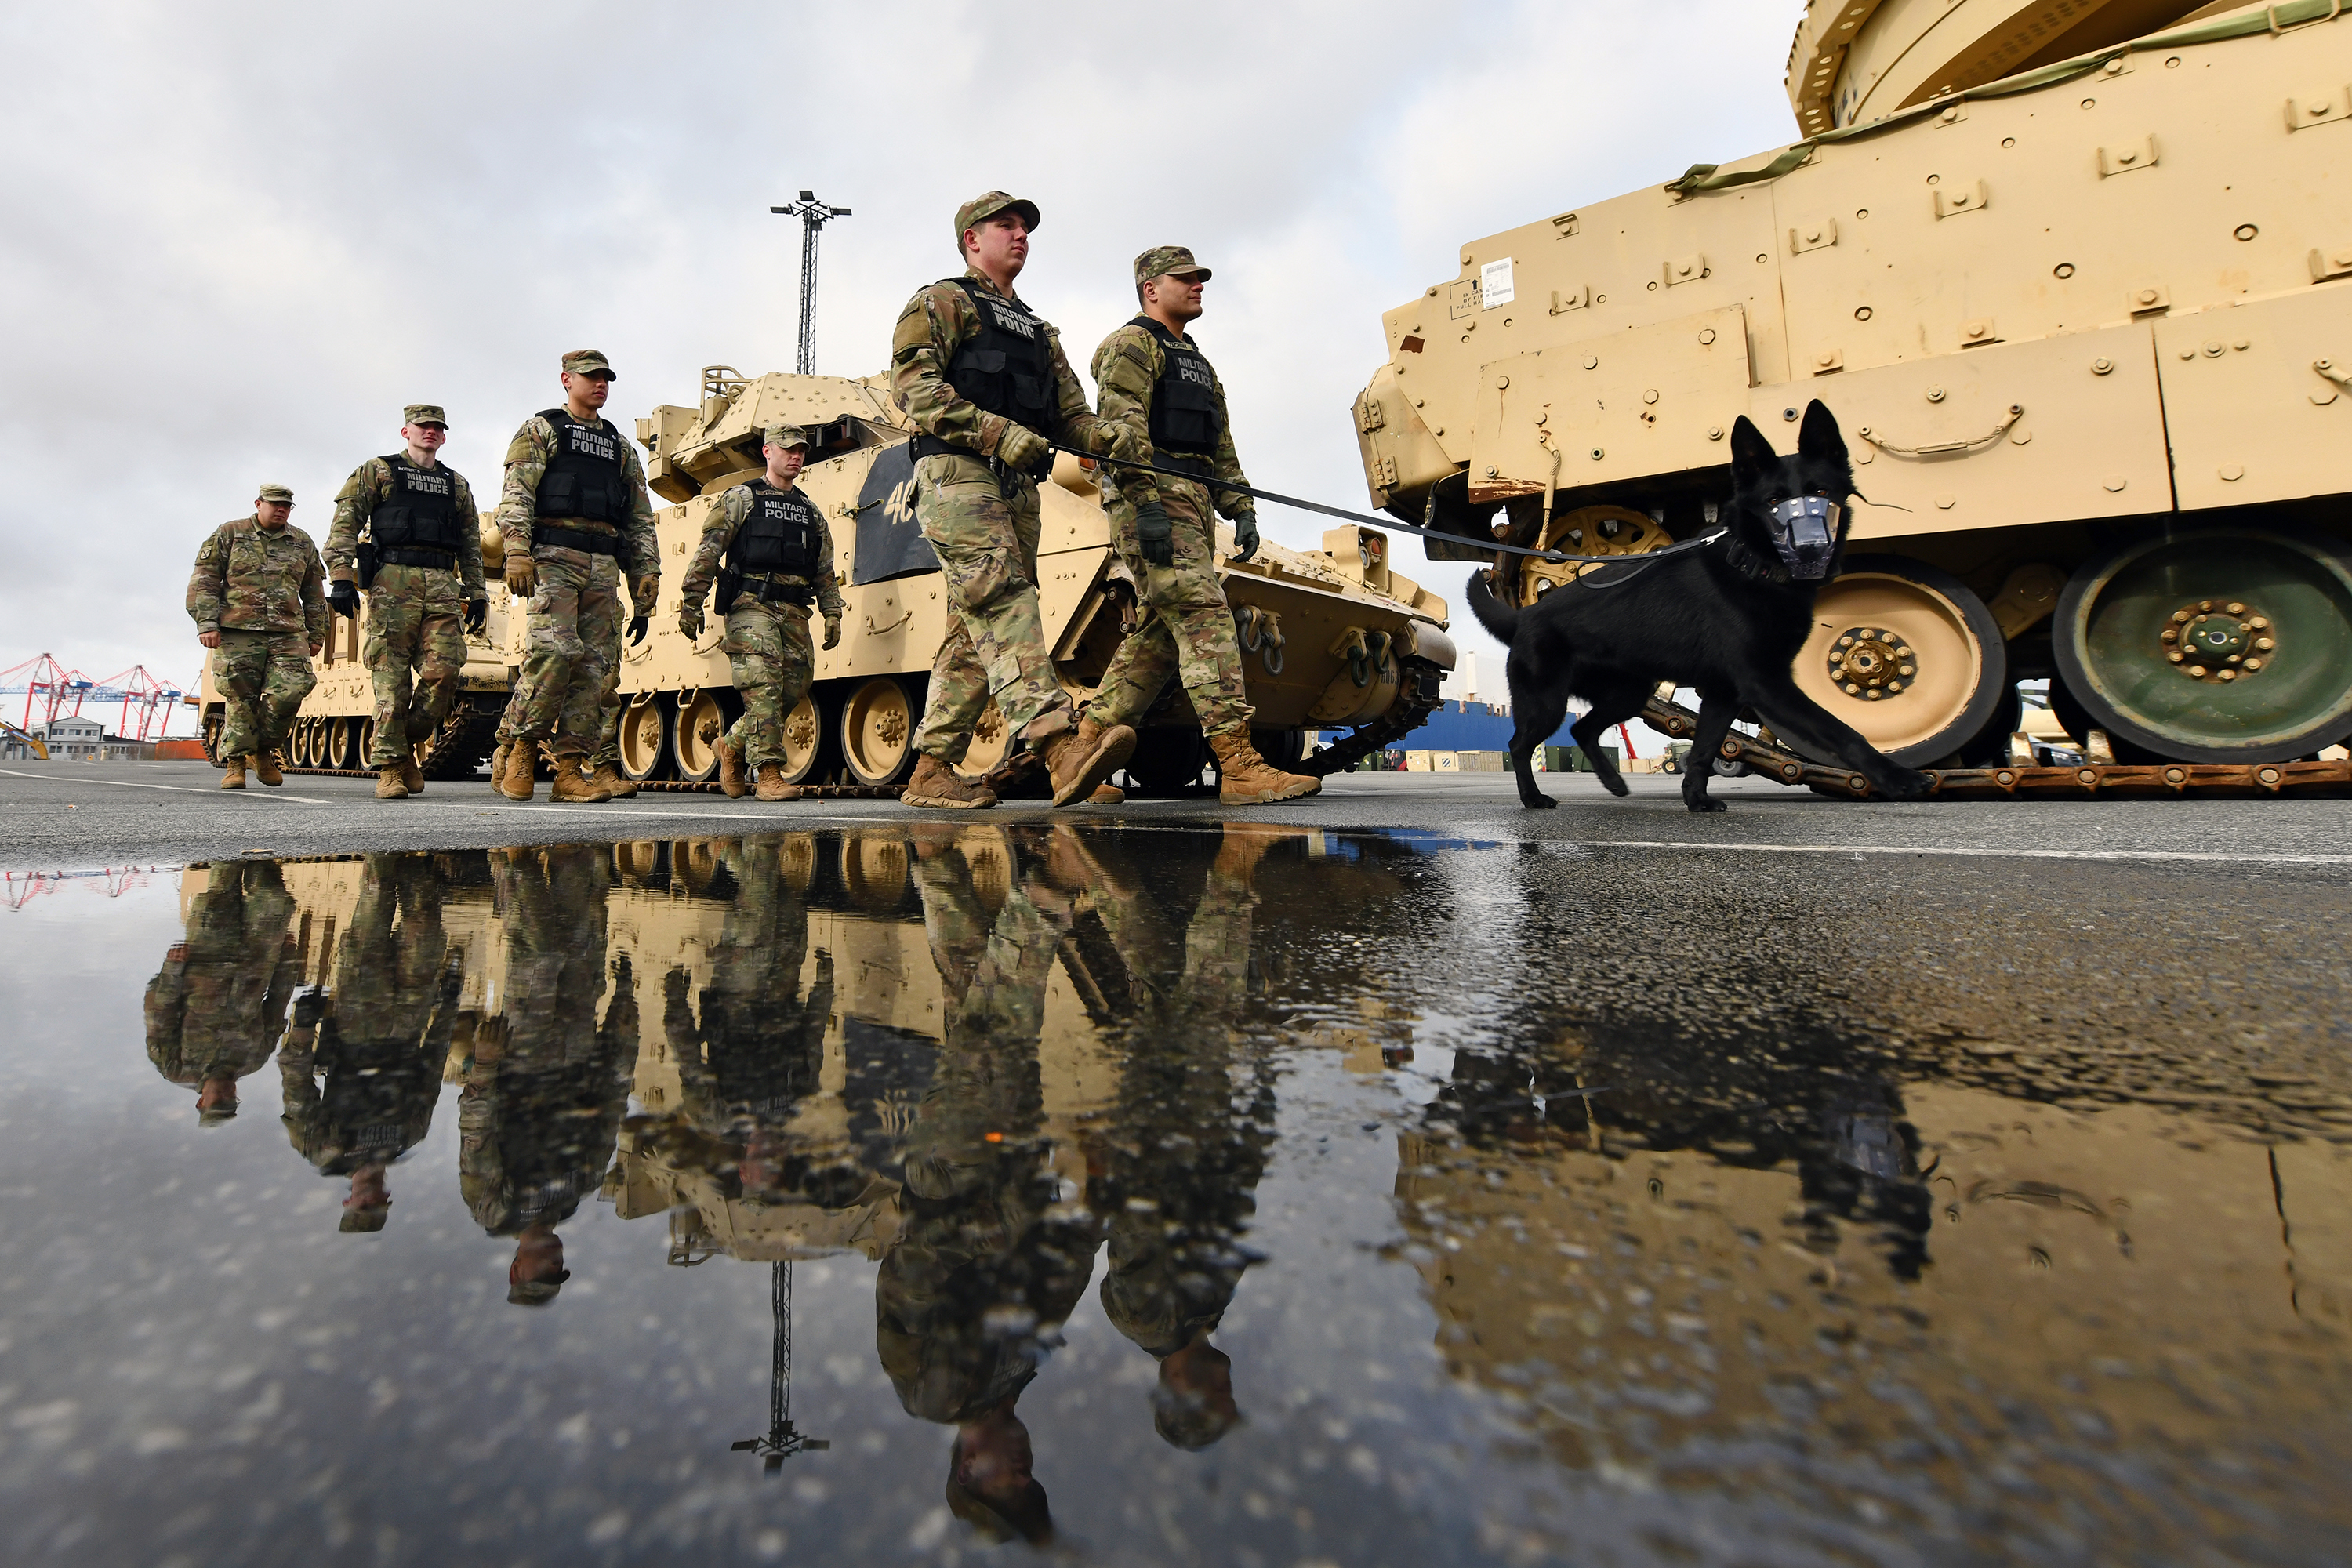 U.S. soldiers assigned to 527th Military Police Company, 615th Military Police Company and 100th Military Working Dog Detachment conduct security rounds at Bremerhaven Port, Bremerhaven, Germany, on Feb. 21, 2020. (Jason Johnston/Army)